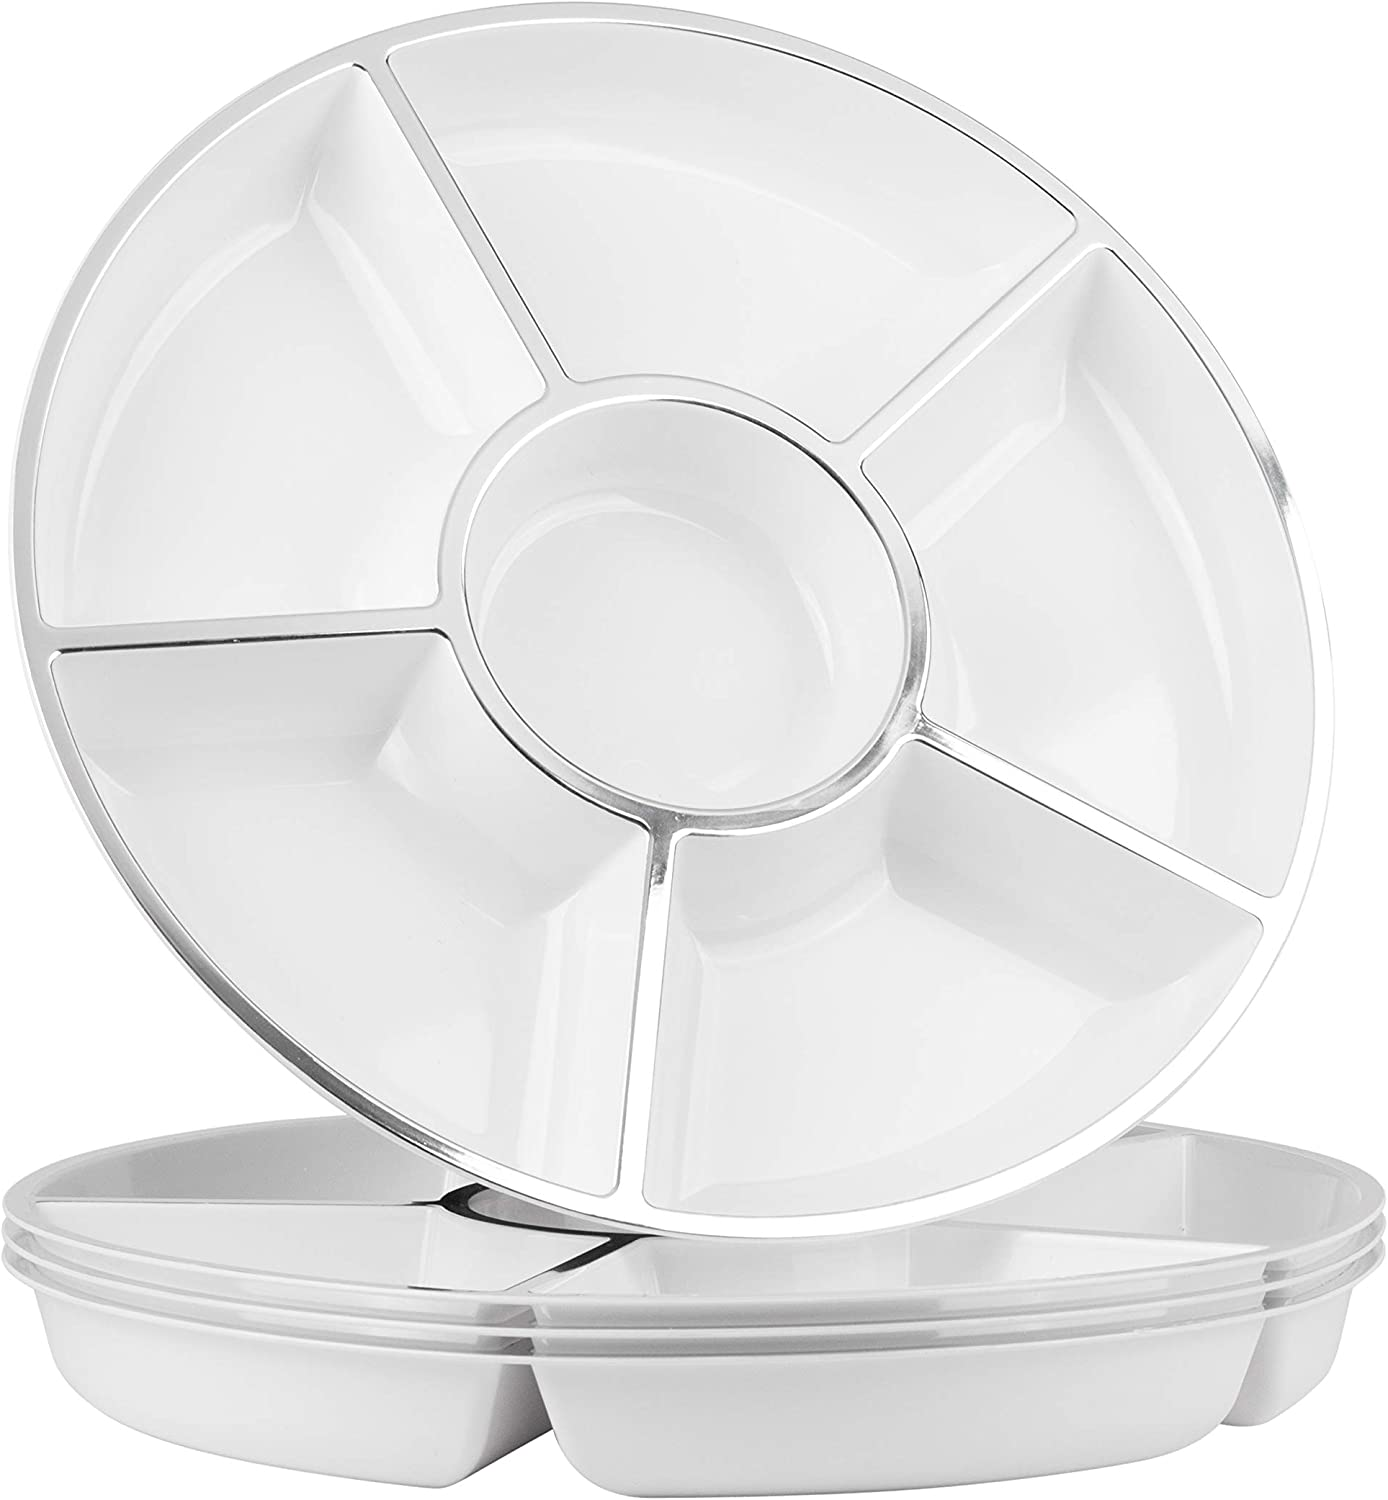 Party Bargains 6 Sectional Round Plastic Serving Tray, Size: 12 inch, Color: White/Silver, Pack of 4